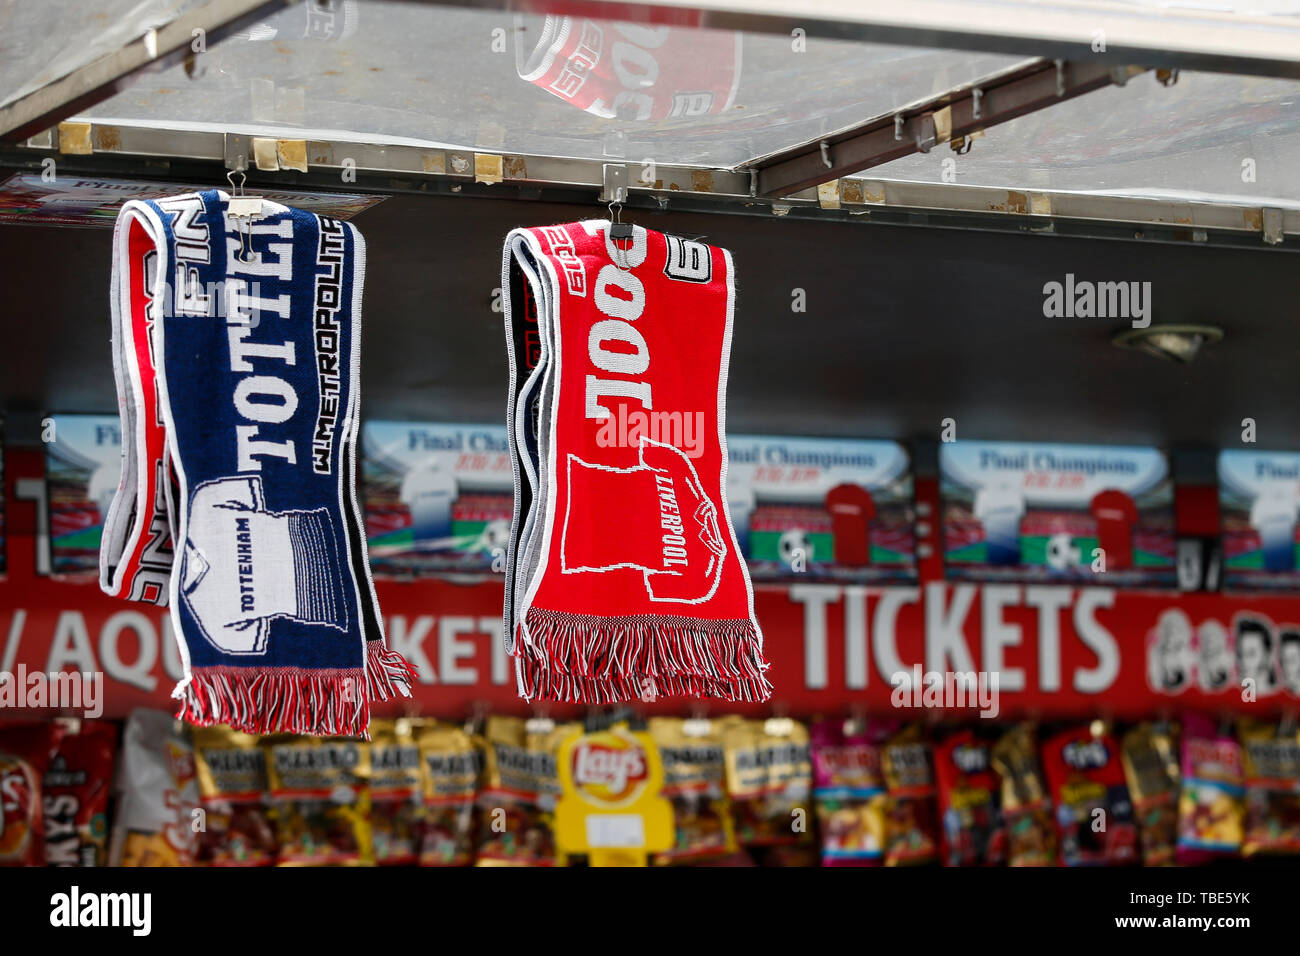 Final Tickets Stock Photos & Final Tickets Stock Images - Alamy